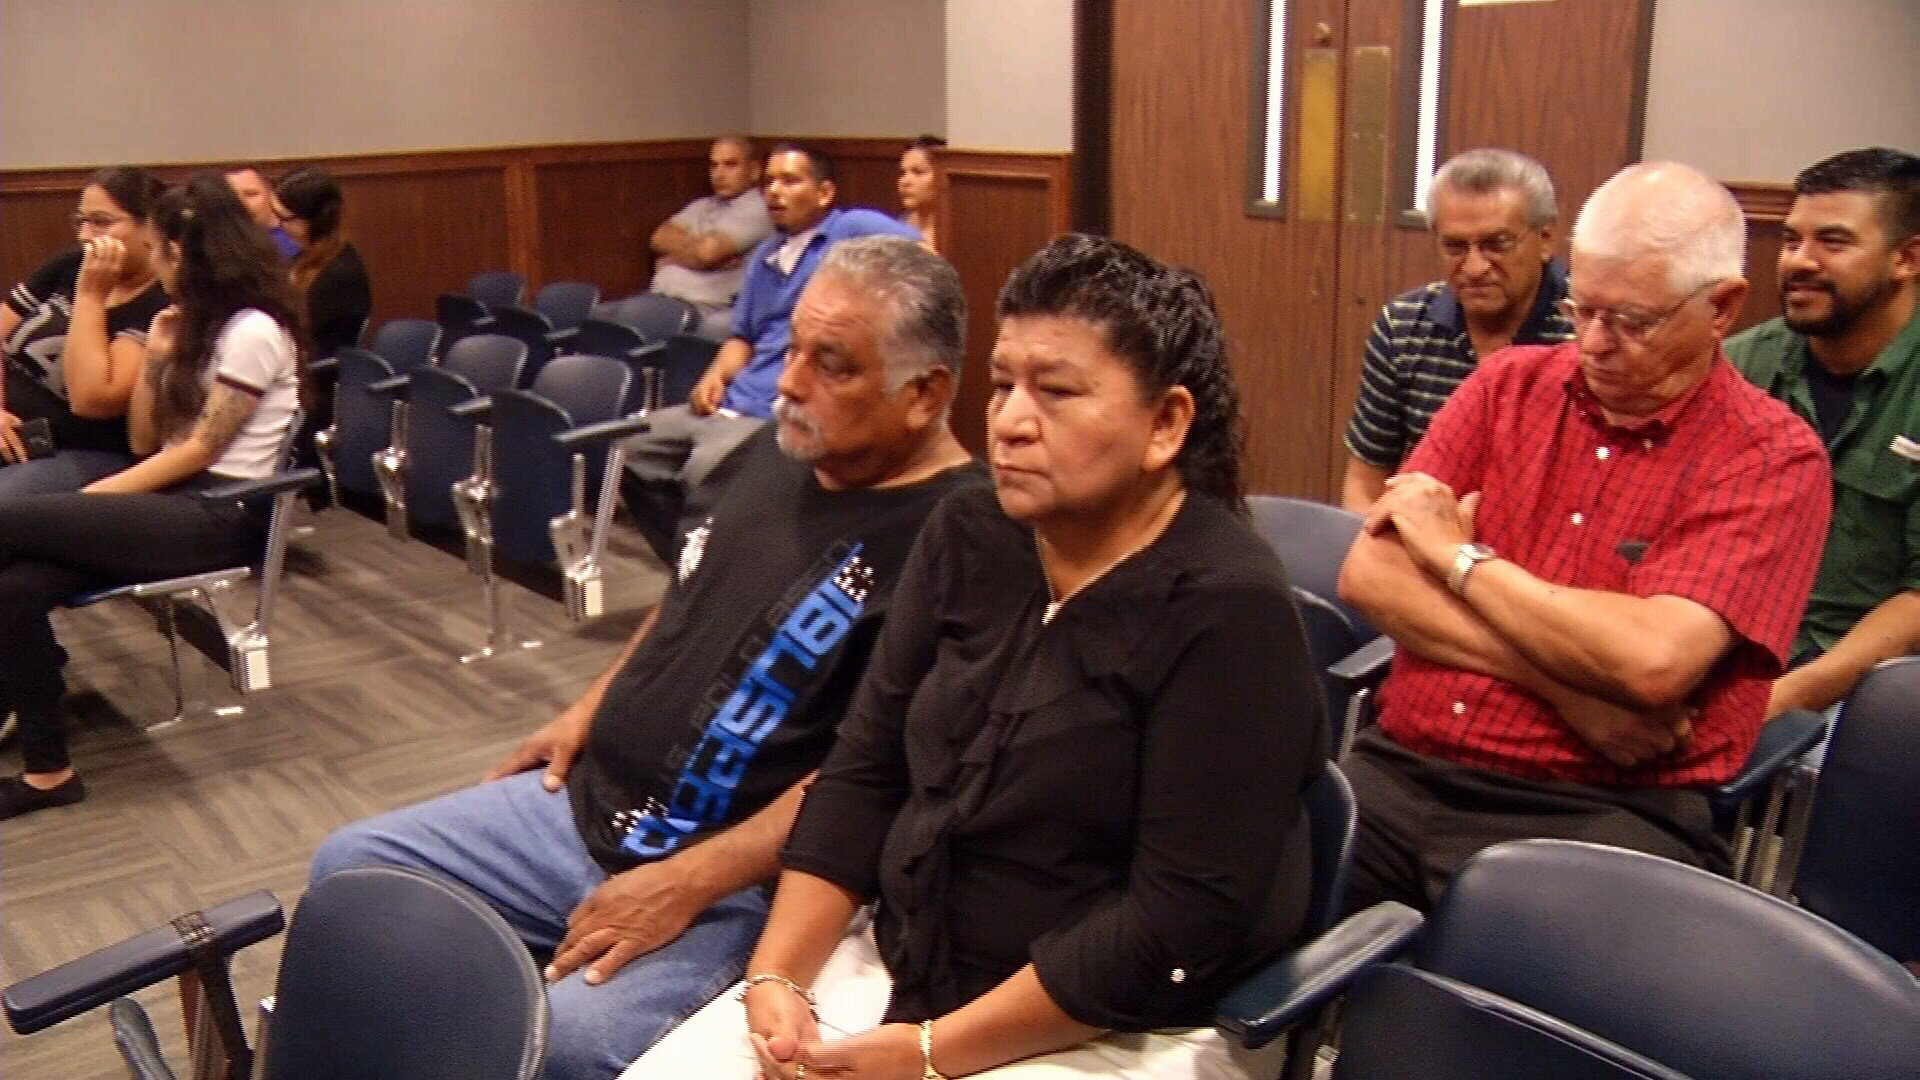 Charles Avalos Jr.'s family also attended Rodriguez's hearing.